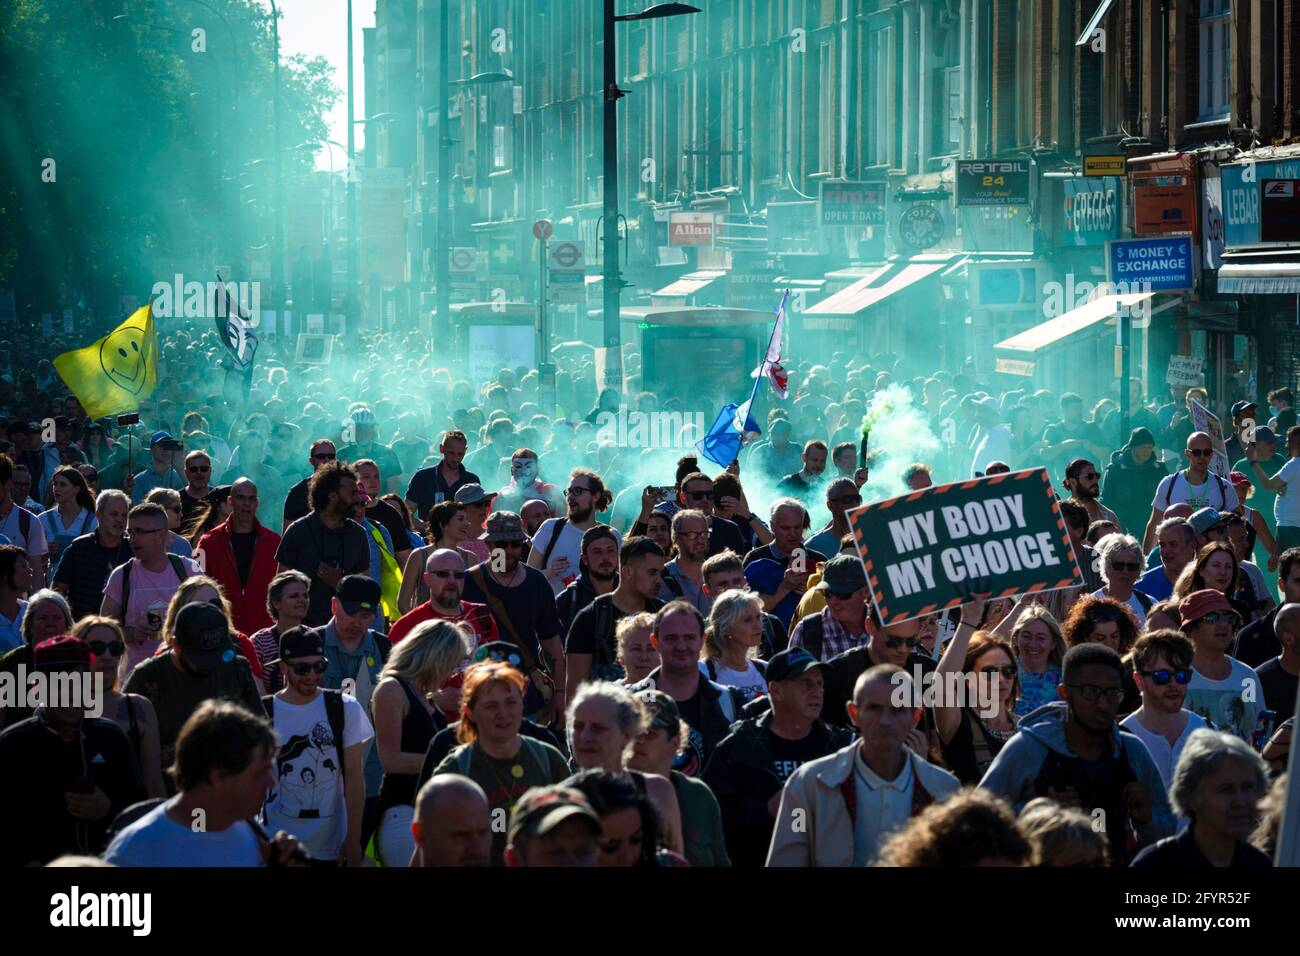 London, UK. 29th May, 2021. People march through the city during an anti-lockdown protest. Thousands of people came out under the banner to Unite for Peace and their Human Rights. The number of people attending the protests has increased month on month since the introduction of the COVID-19 restrictions. Credit: SOPA Images Limited/Alamy Live News Stock Photo